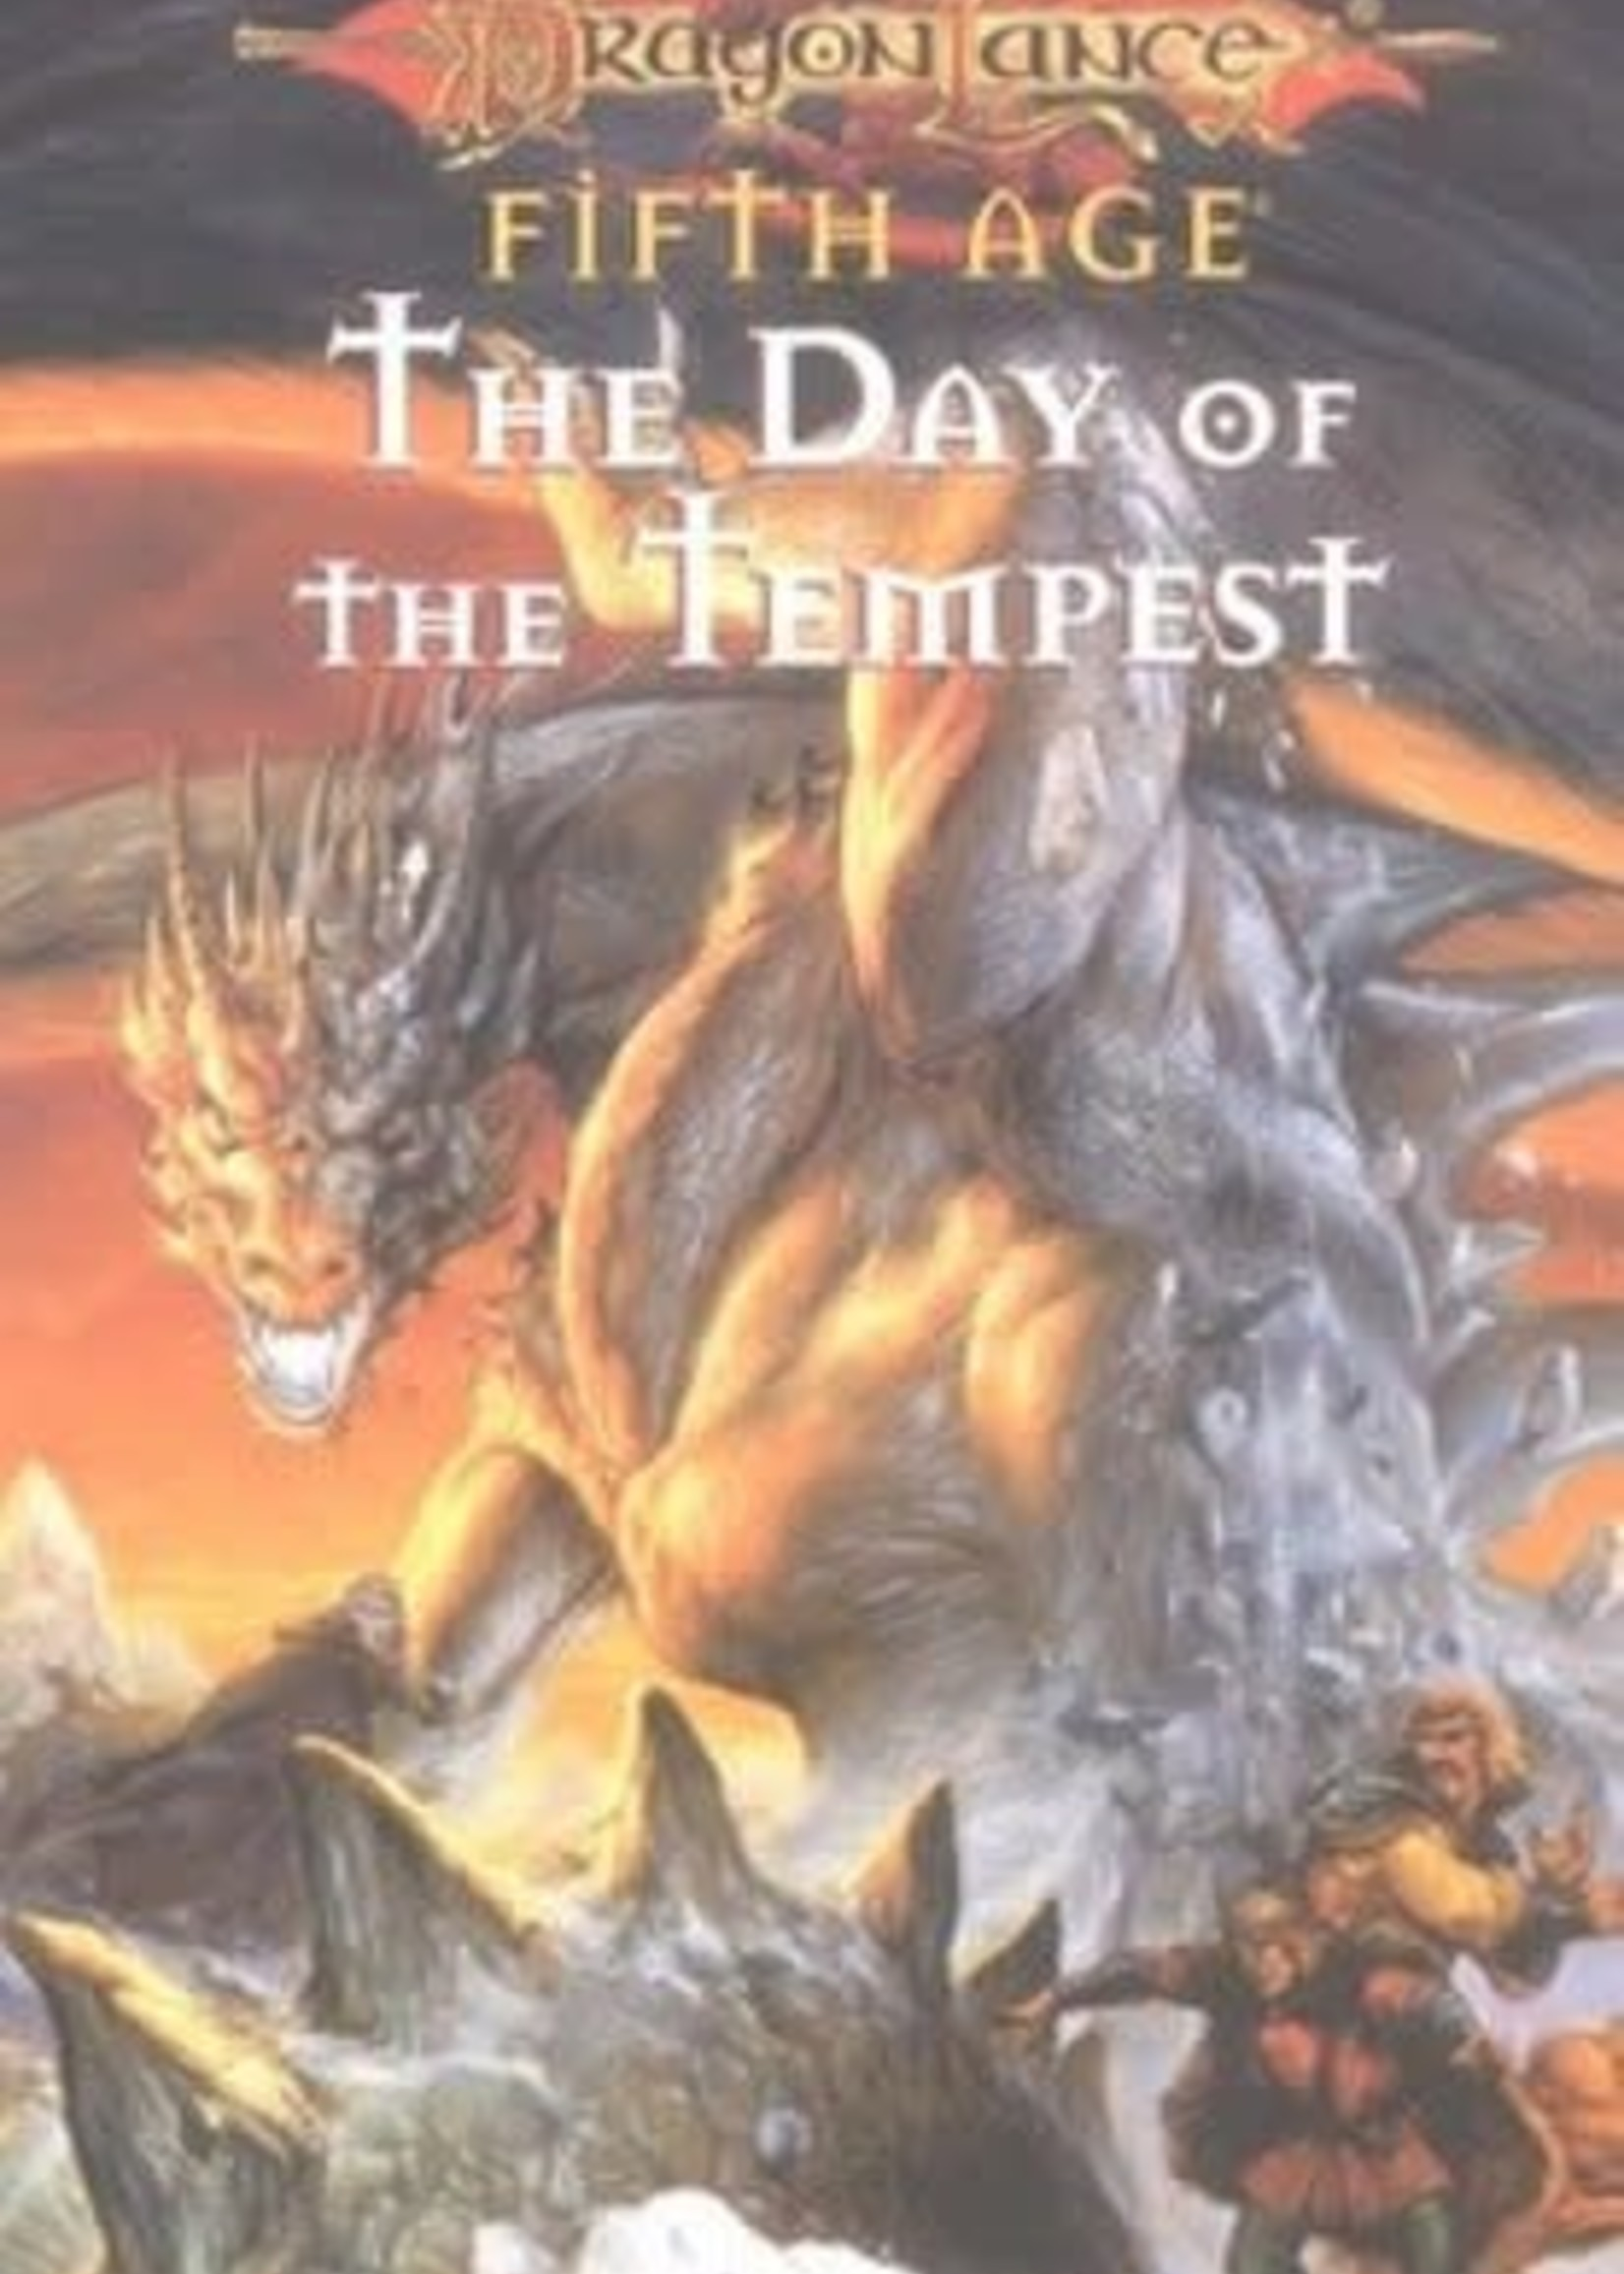 The Day of the Tempest (Dragonlance: Dragons of a New Age #3) by Jean Rabe